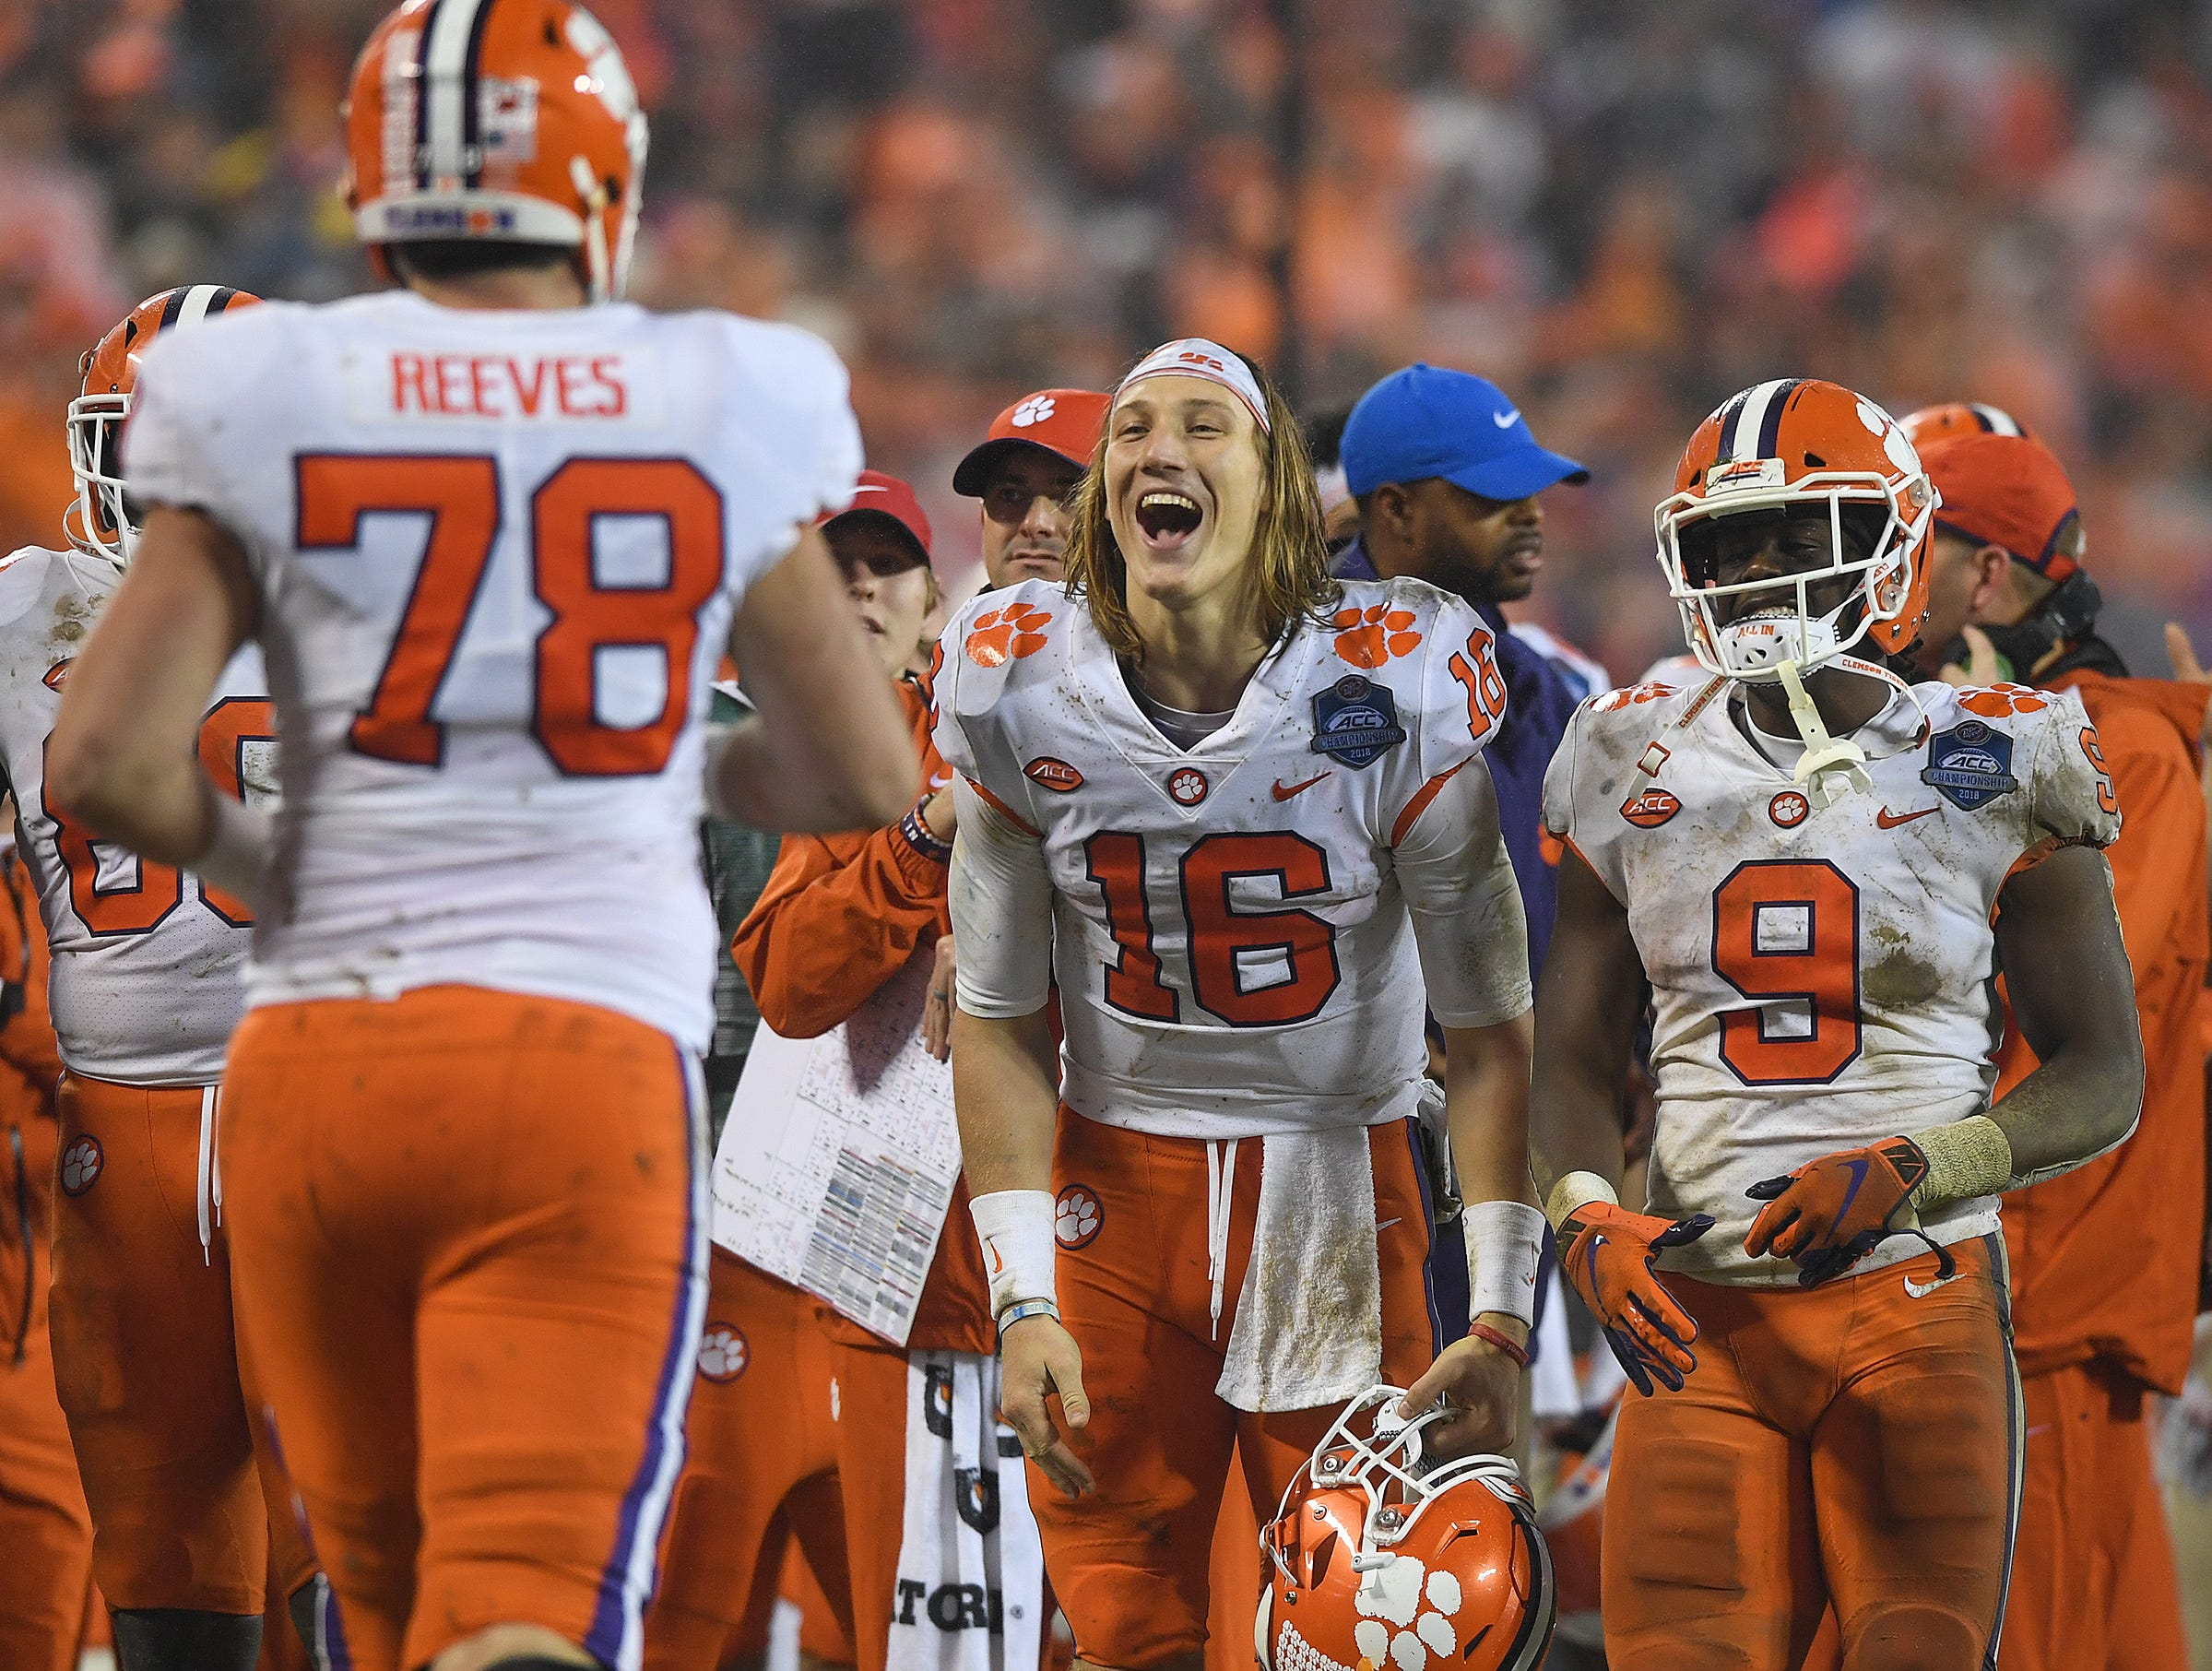 Clemson quarterback Trevor Lawrence (16) celebrates as the 2nd string offense comes off the field after scoring against Pittsburgh during the 4th quarter of the Dr. Pepper ACC Championship at Bank of America Stadium in Charlotte, N.C. Saturday, December 1, 2018.